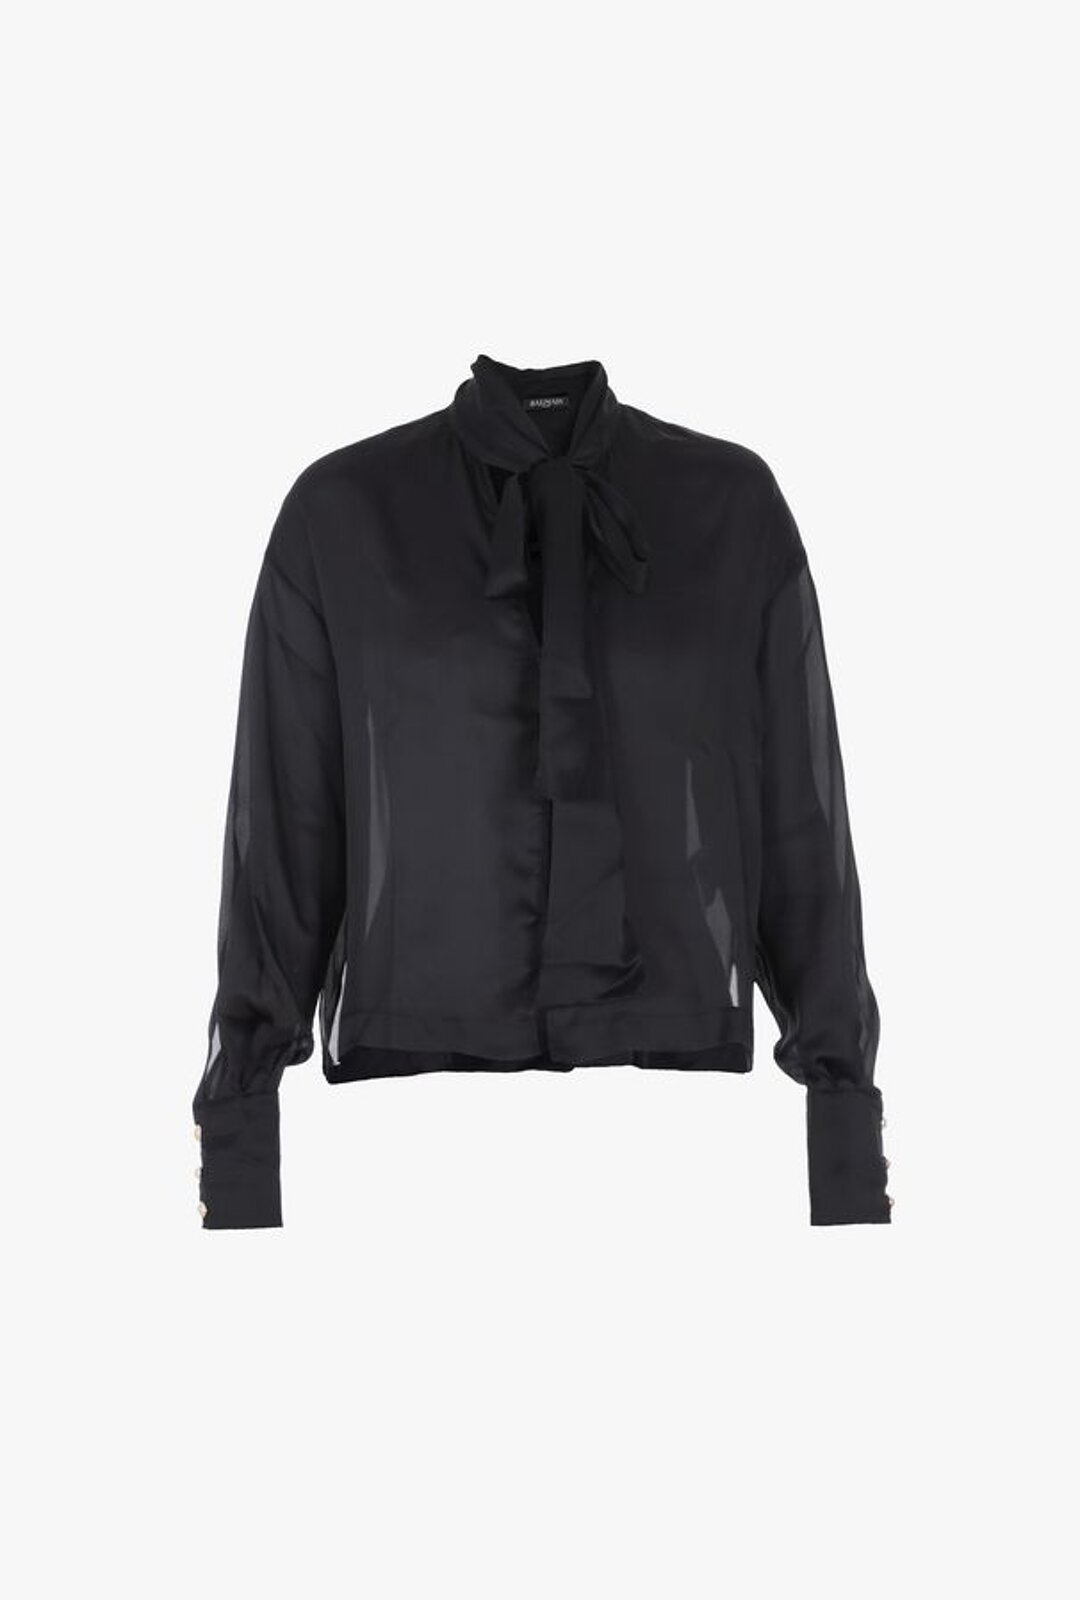 Black Silk Blouse With Neck Ribbon - Balmain